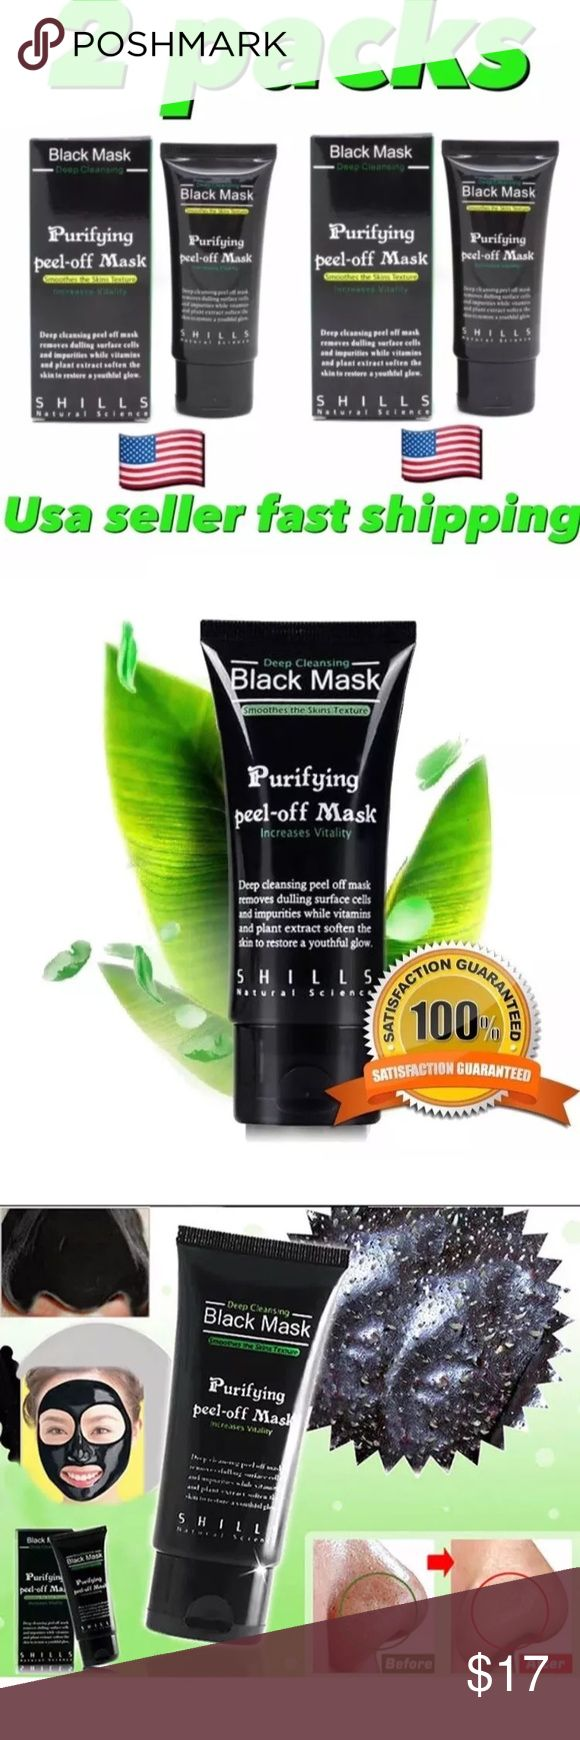 2PACK OF DEEP BLACKHEAD REMOVER FACIAL Purifying peel-off Mask, facial blackheads remover    Deep cleansing peel off mask removes dulling surface cells and impurities while vitamins and plans extract soften the skin to restore a youthful glove .     Apply.  Apply as a mask on dry, cleaned area. Avoid eyes, eyebrows, lips. Peel it off after 20 minutes. Other